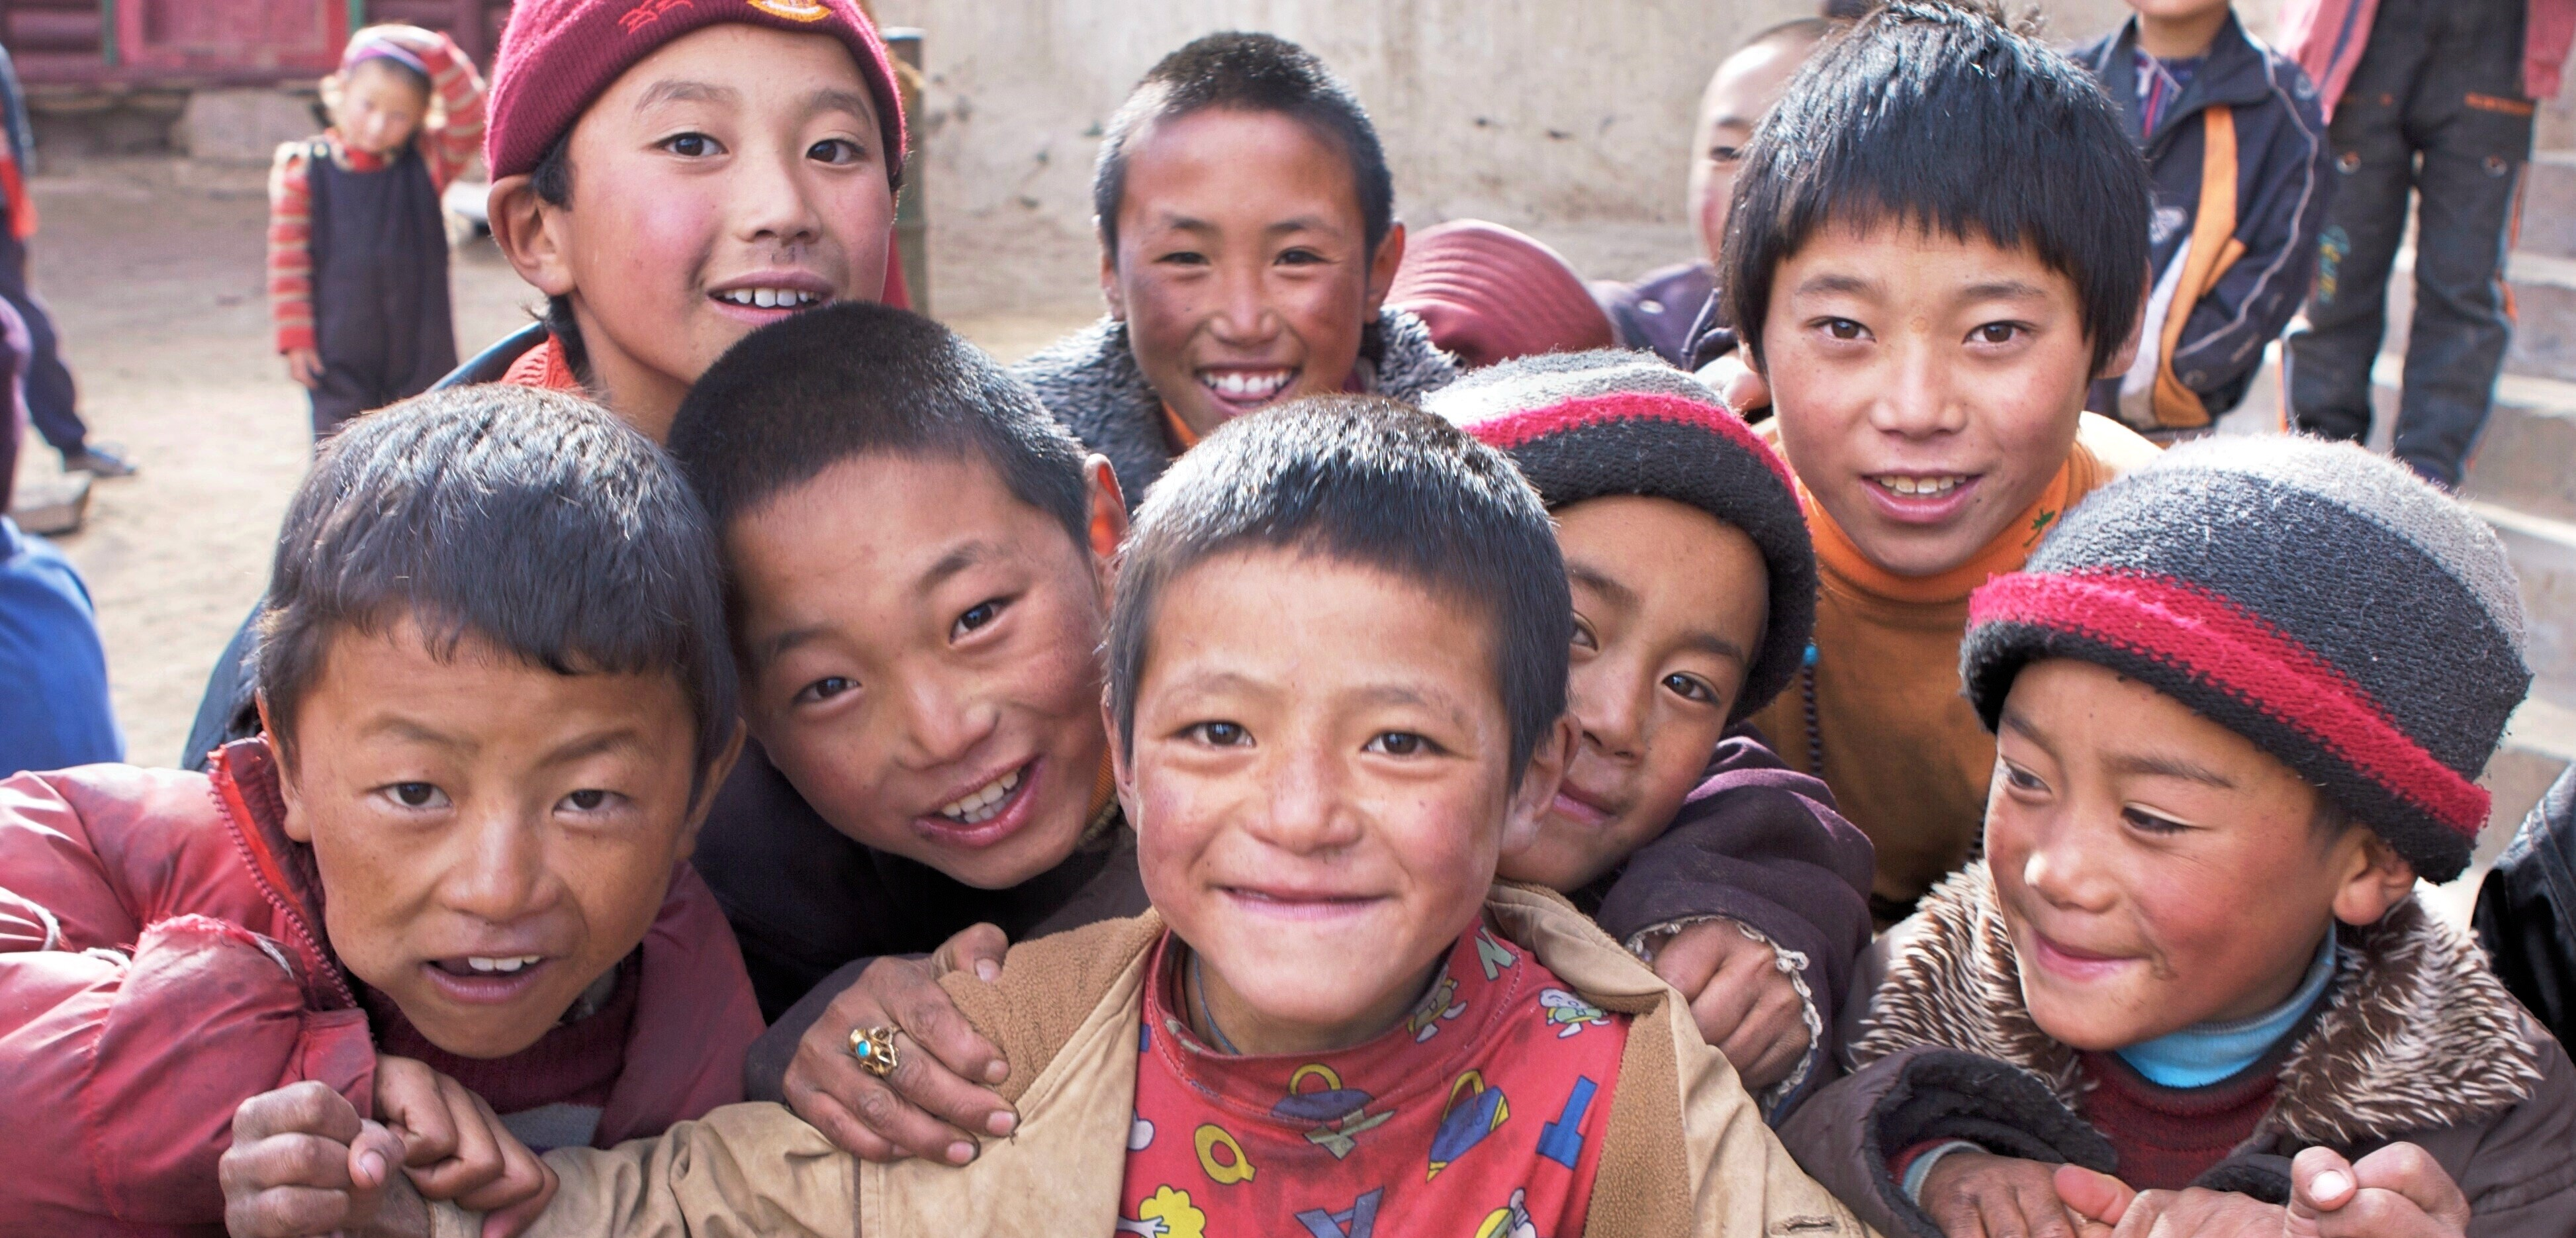 Supporting healthcare, education and poverty relief in Rigul, Tibet and other Himalayan communities